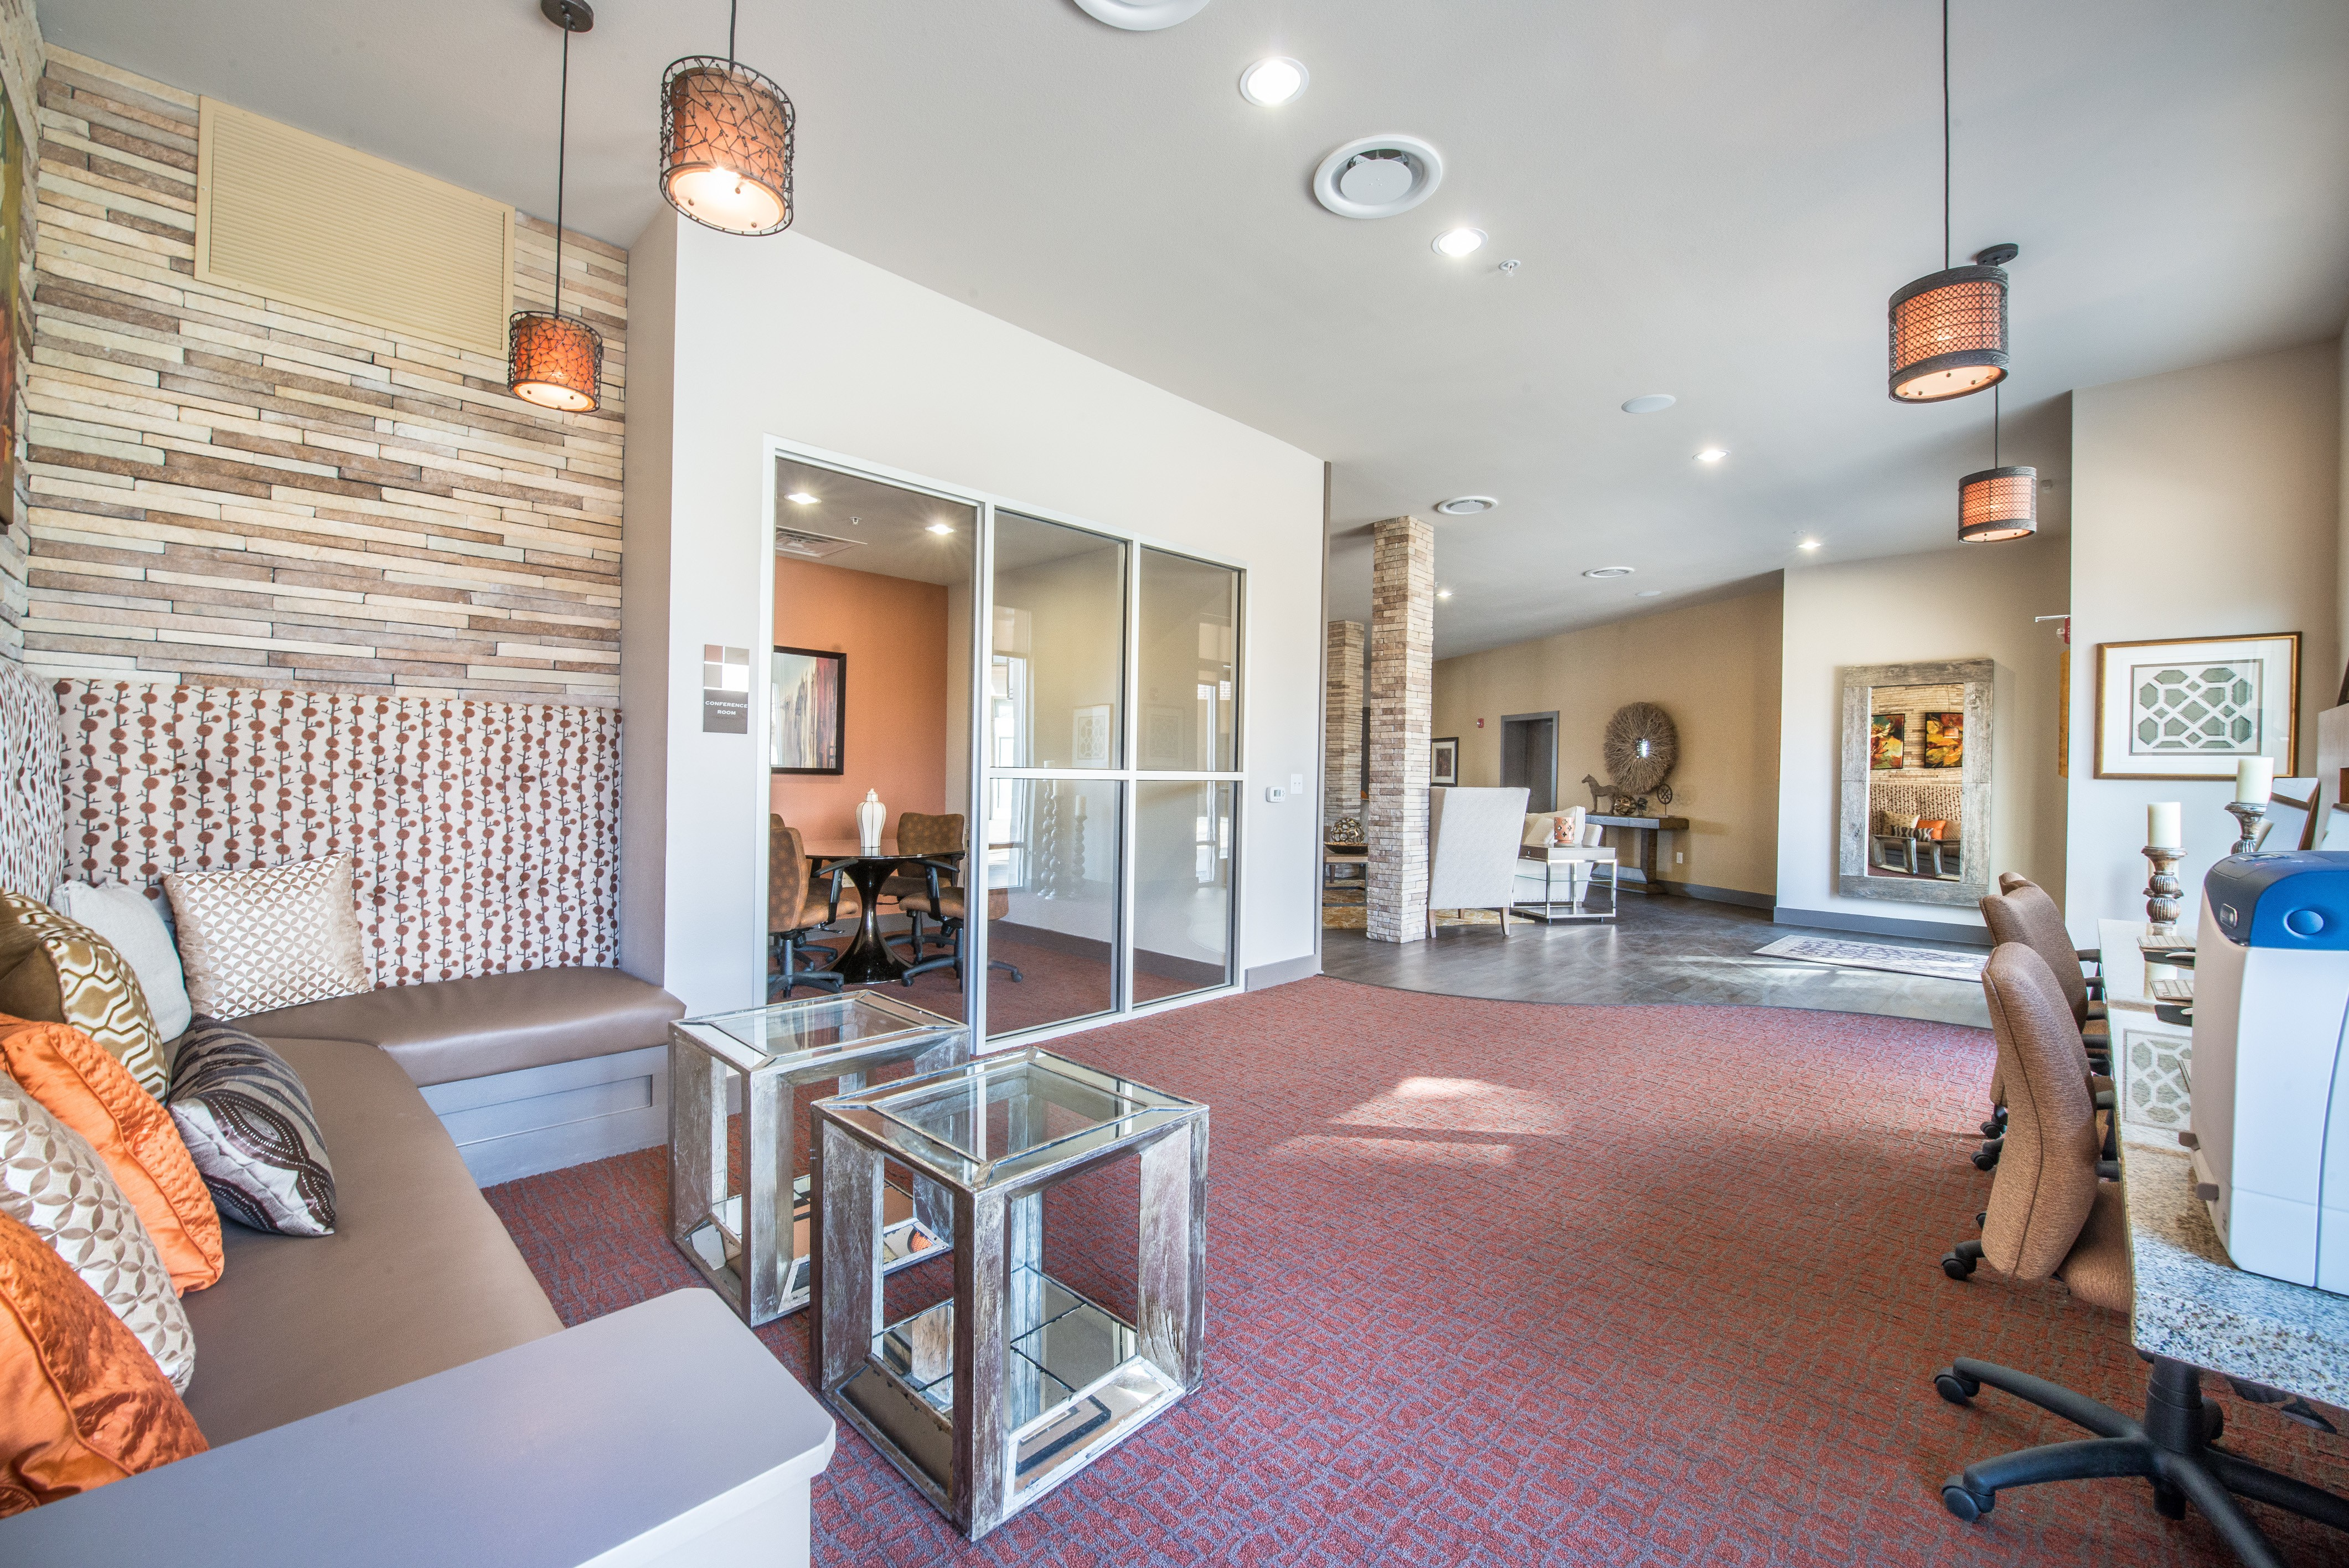 Union At Carrollton Square Apartments for rent